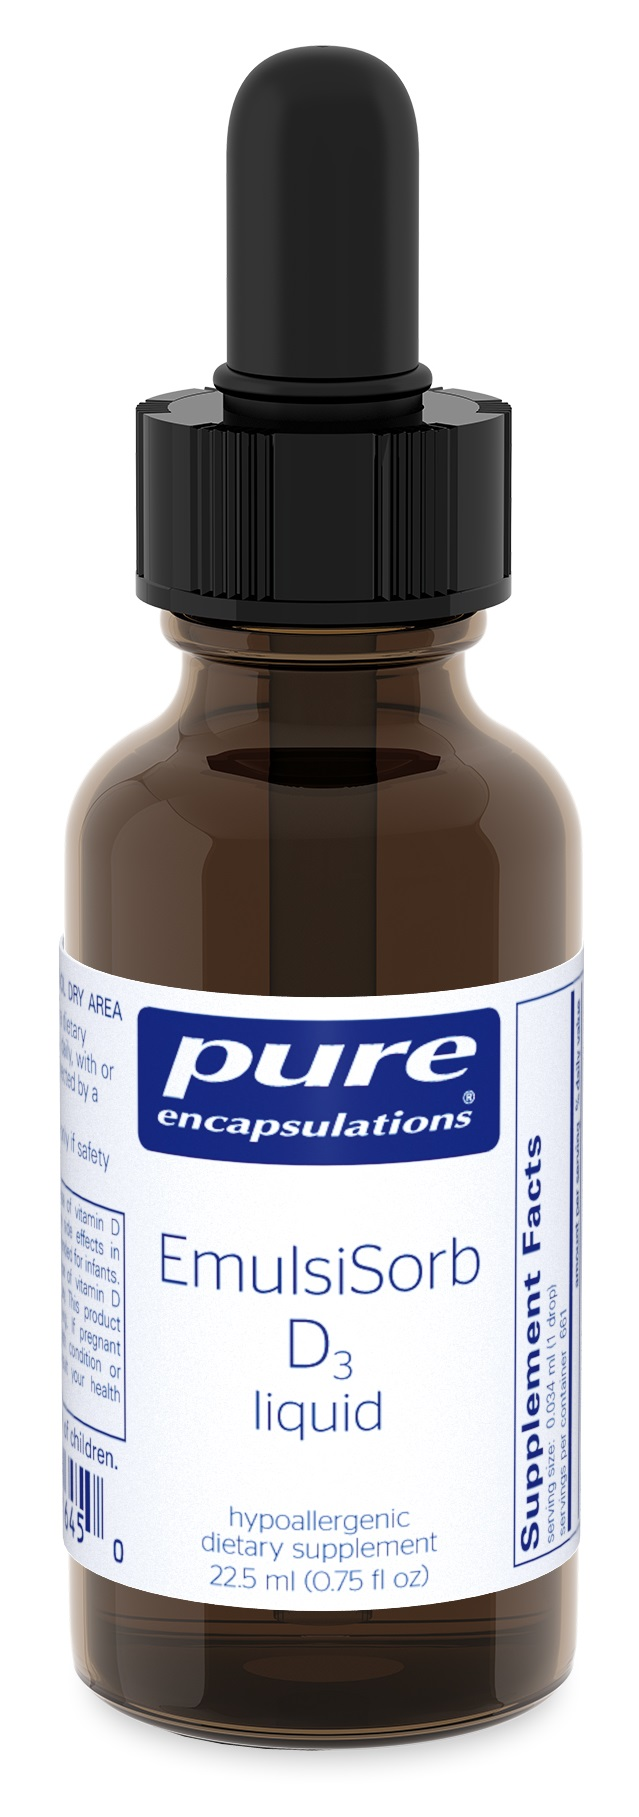 Pure Encapsulations EmulsiSorb D3 liquid 22.5